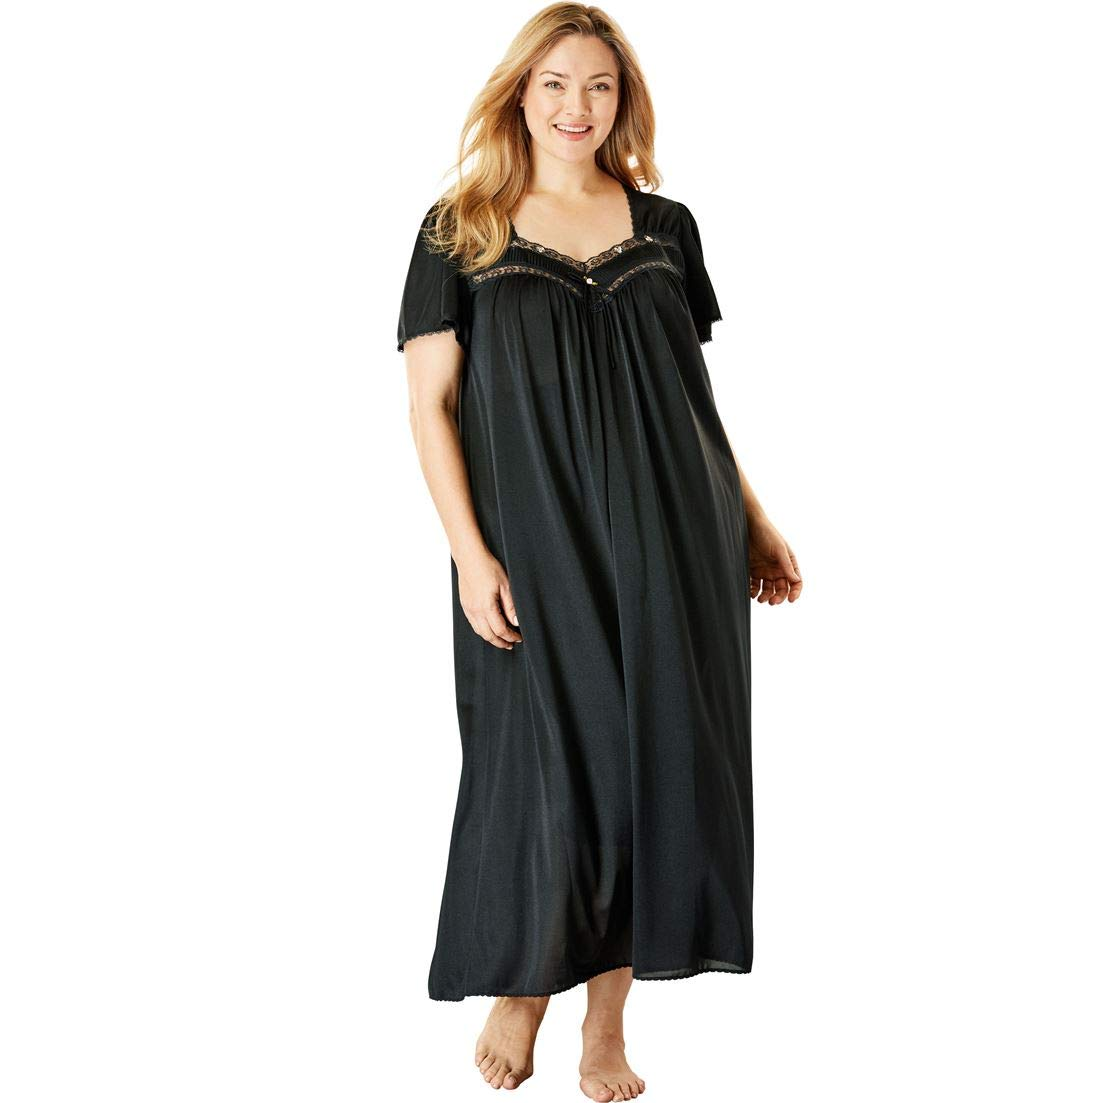 a0ba856c3e Only Necessities Women s Plus Size Long Silky Lace-Trim Gown at Amazon  Women s Clothing store  Miss Elaine Nightgowns